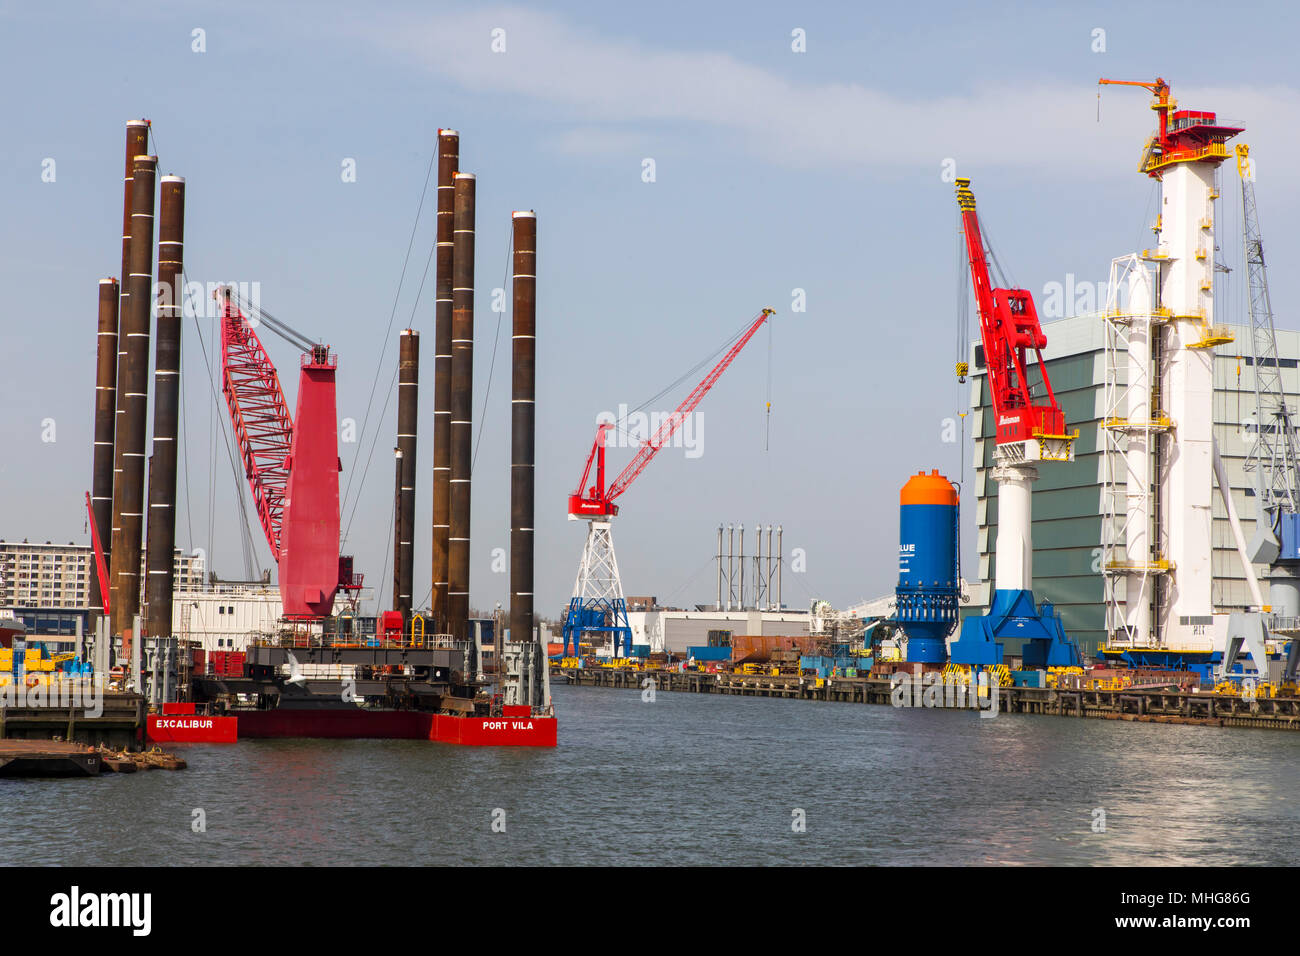 The port of Rotterdam, Netherlands, shipyards in the